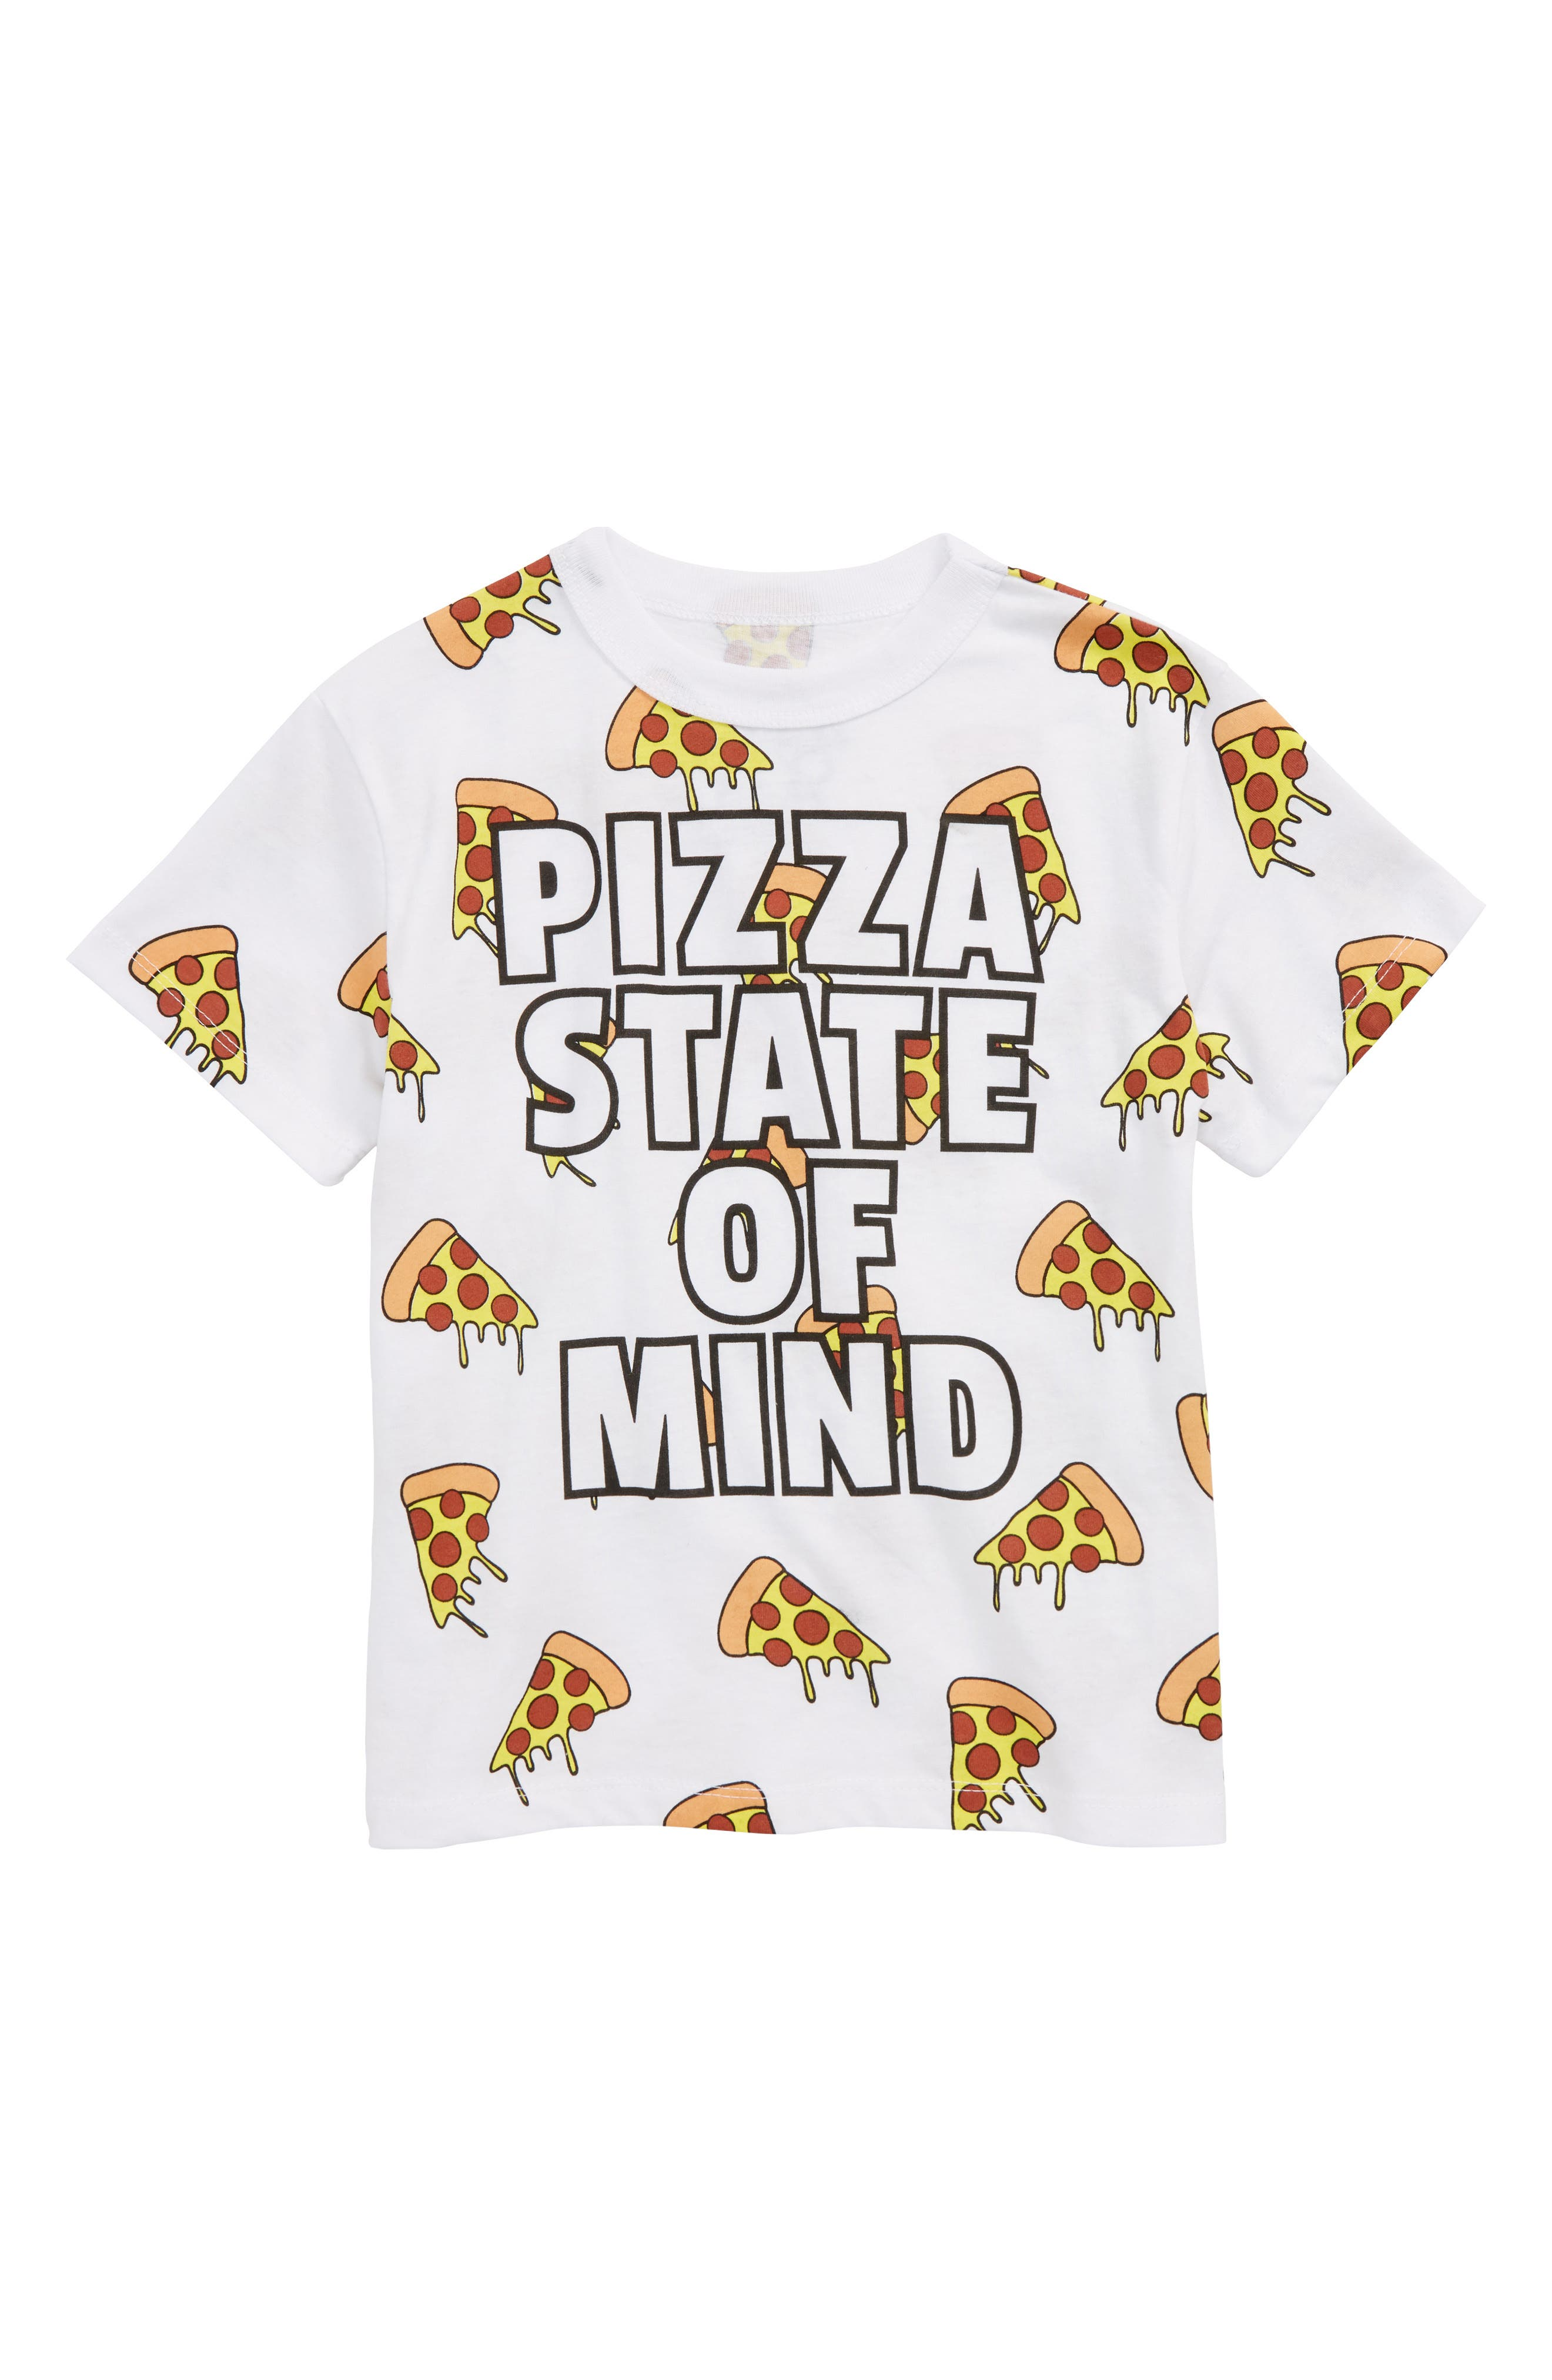 Pizza State of Mind T-Shirt,                             Main thumbnail 1, color,                             White